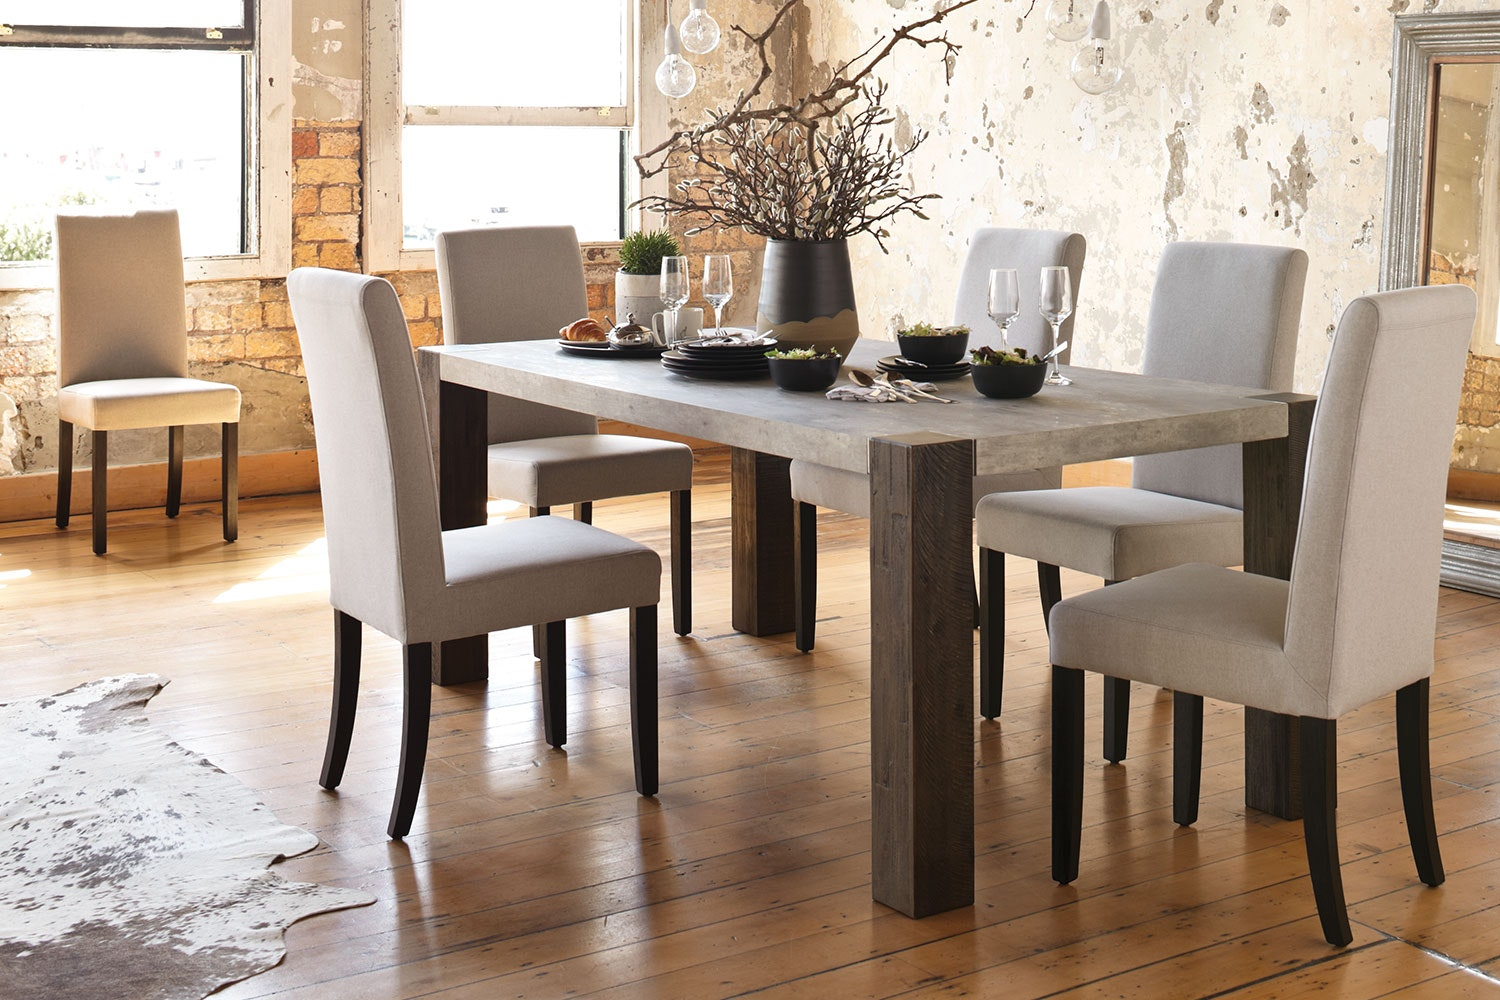 Dining table Outdoor Faro Dining Table By La Boy Harvey Norman New Zealand Table Design Ideas Dining Tables Buy Table Design Ideas